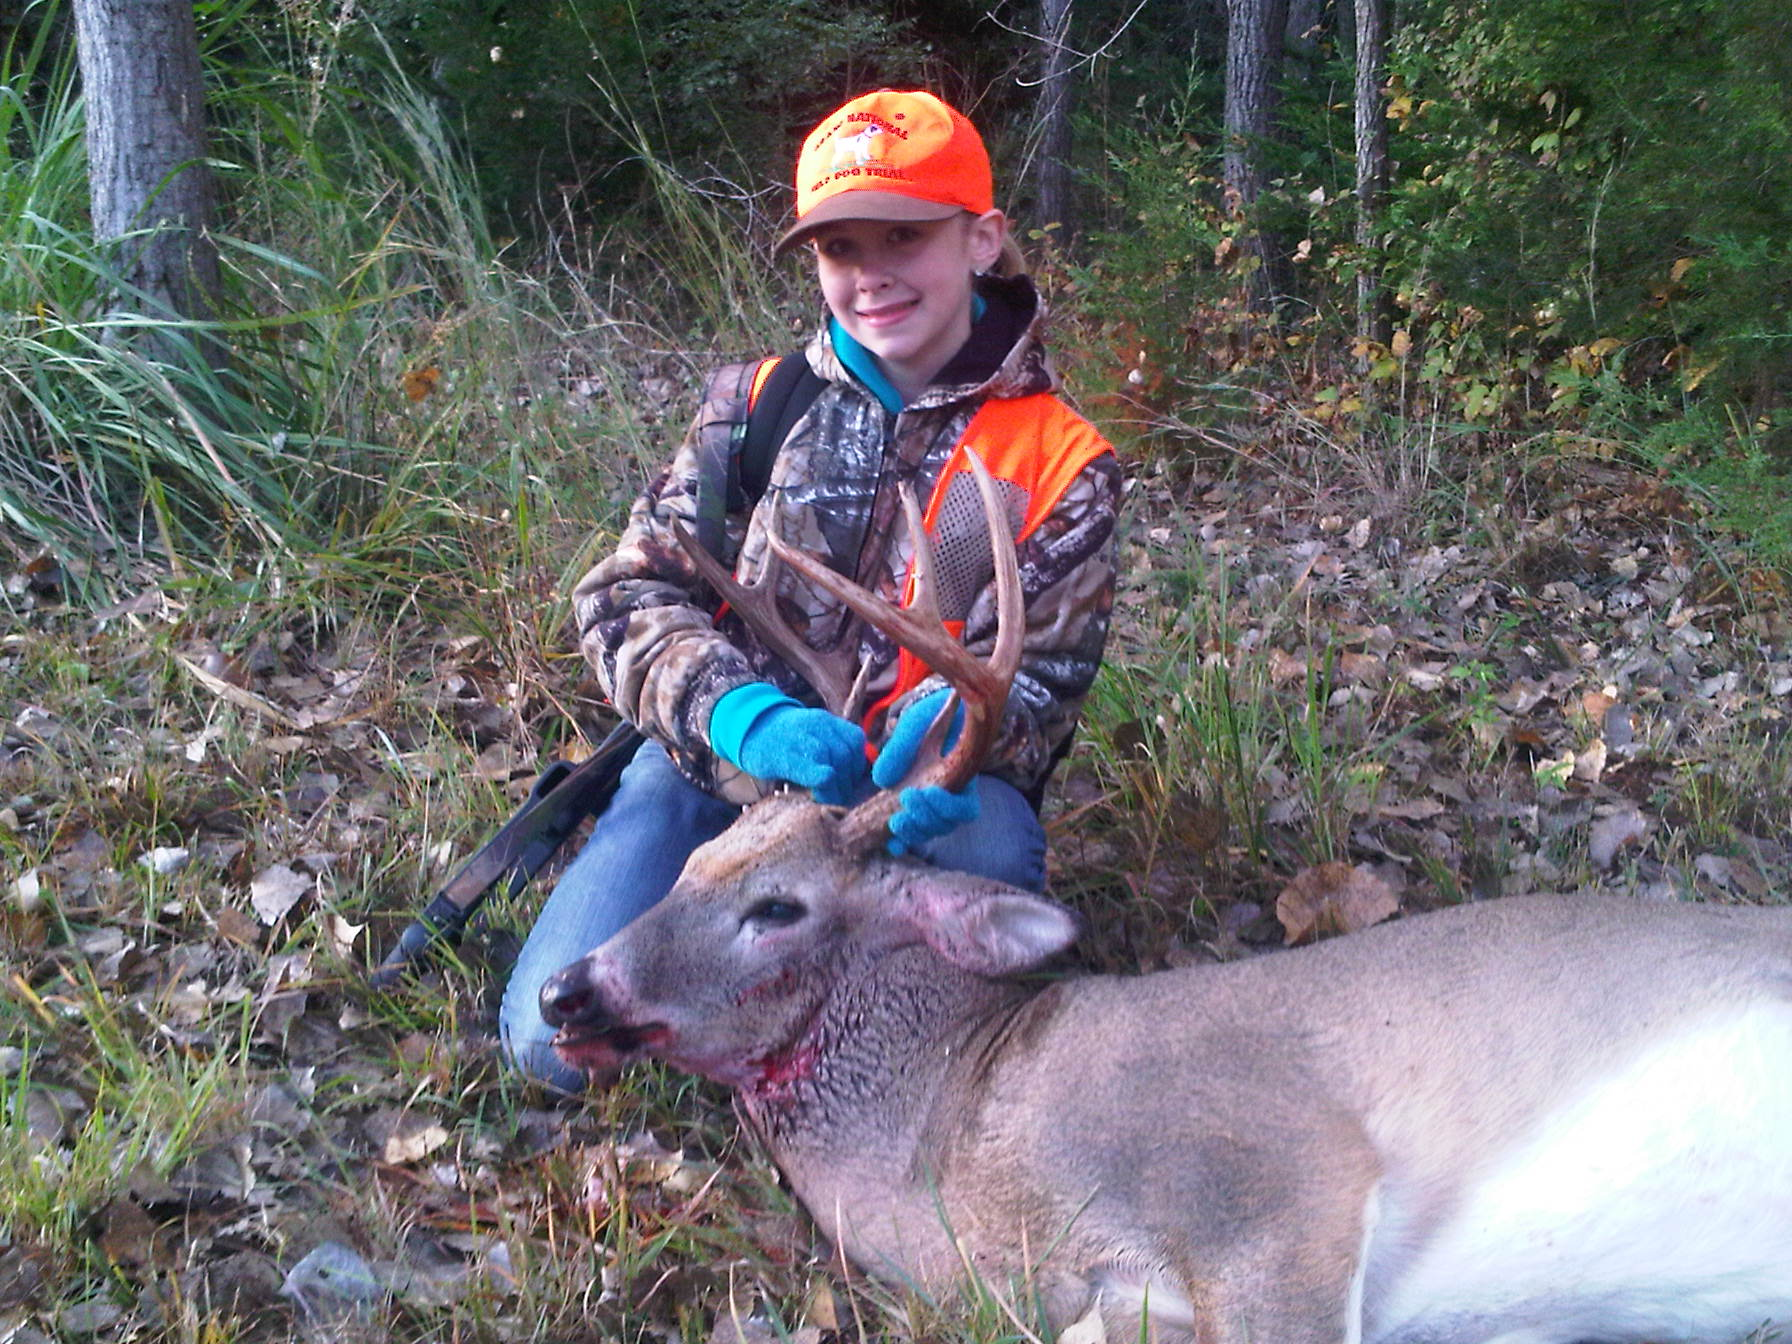 Oklahoma deer hunters are offering mixed reviews of the prior season and are uncertain about the 2015 season.